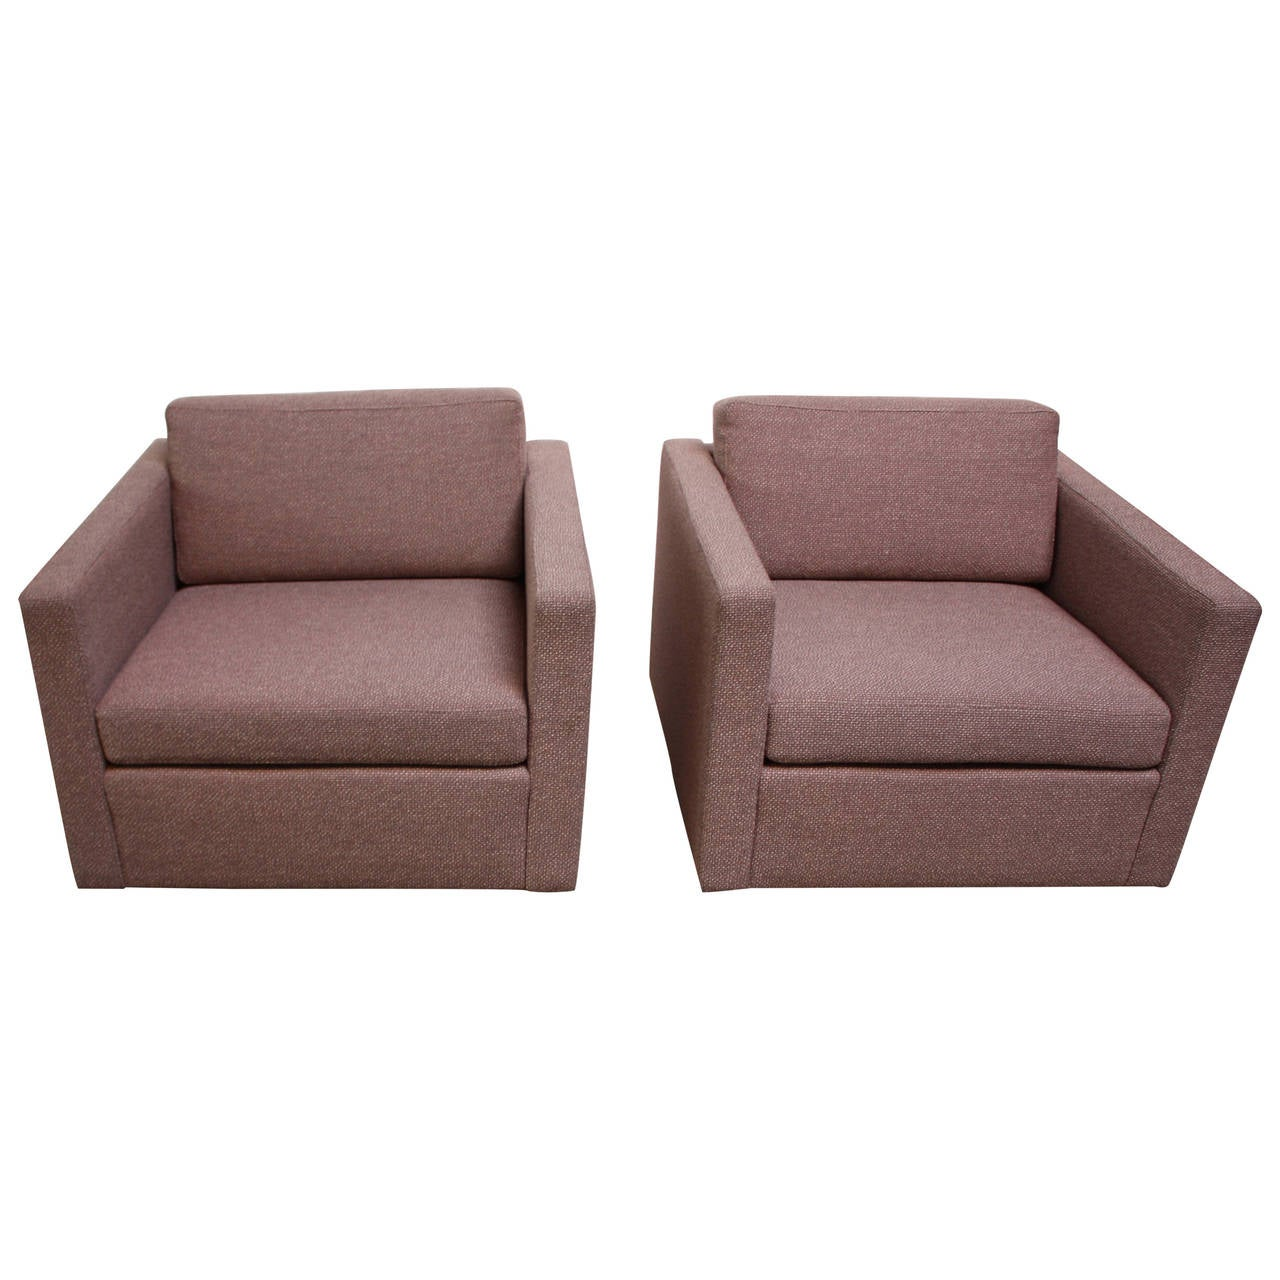 Pair of jack cartwright cube chairs for sale at 1stdibs for Furniture jack